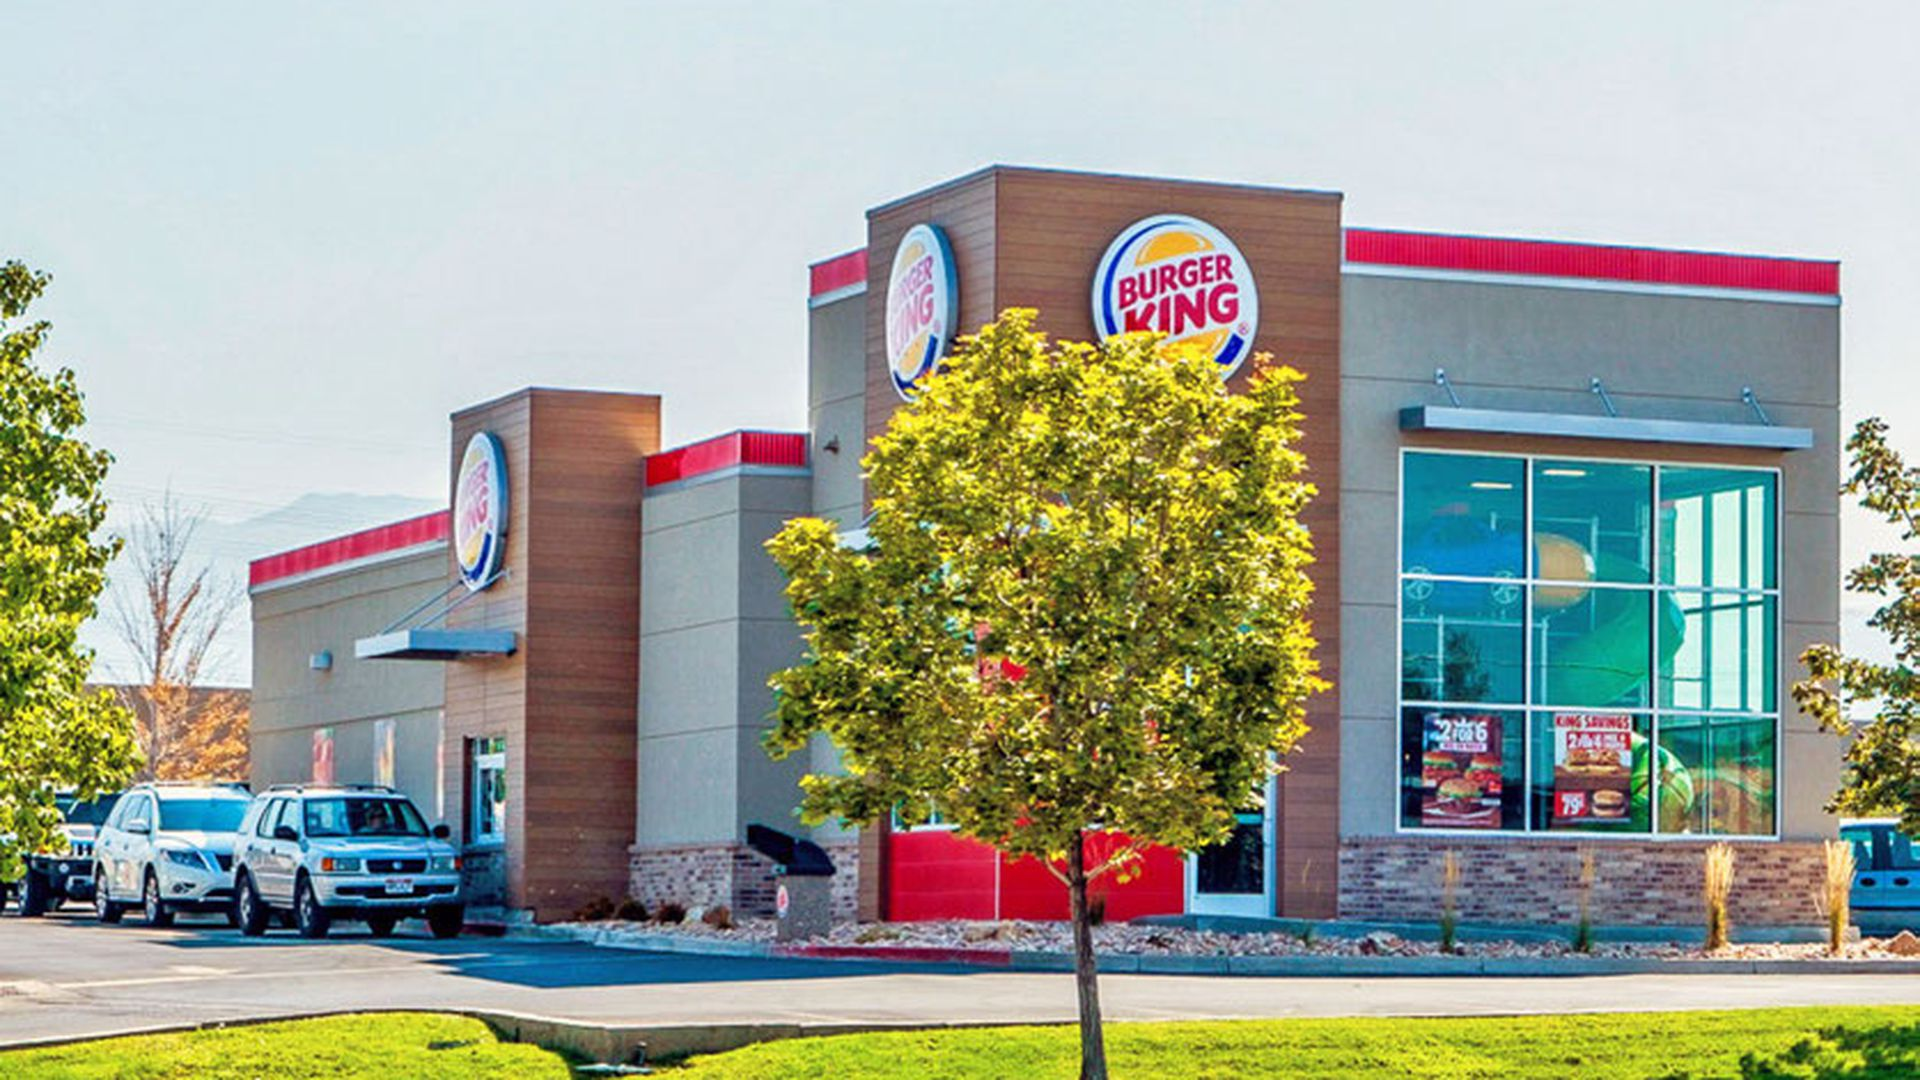 Burger King Clinton, UT - 5.35% CAP$2,500,000